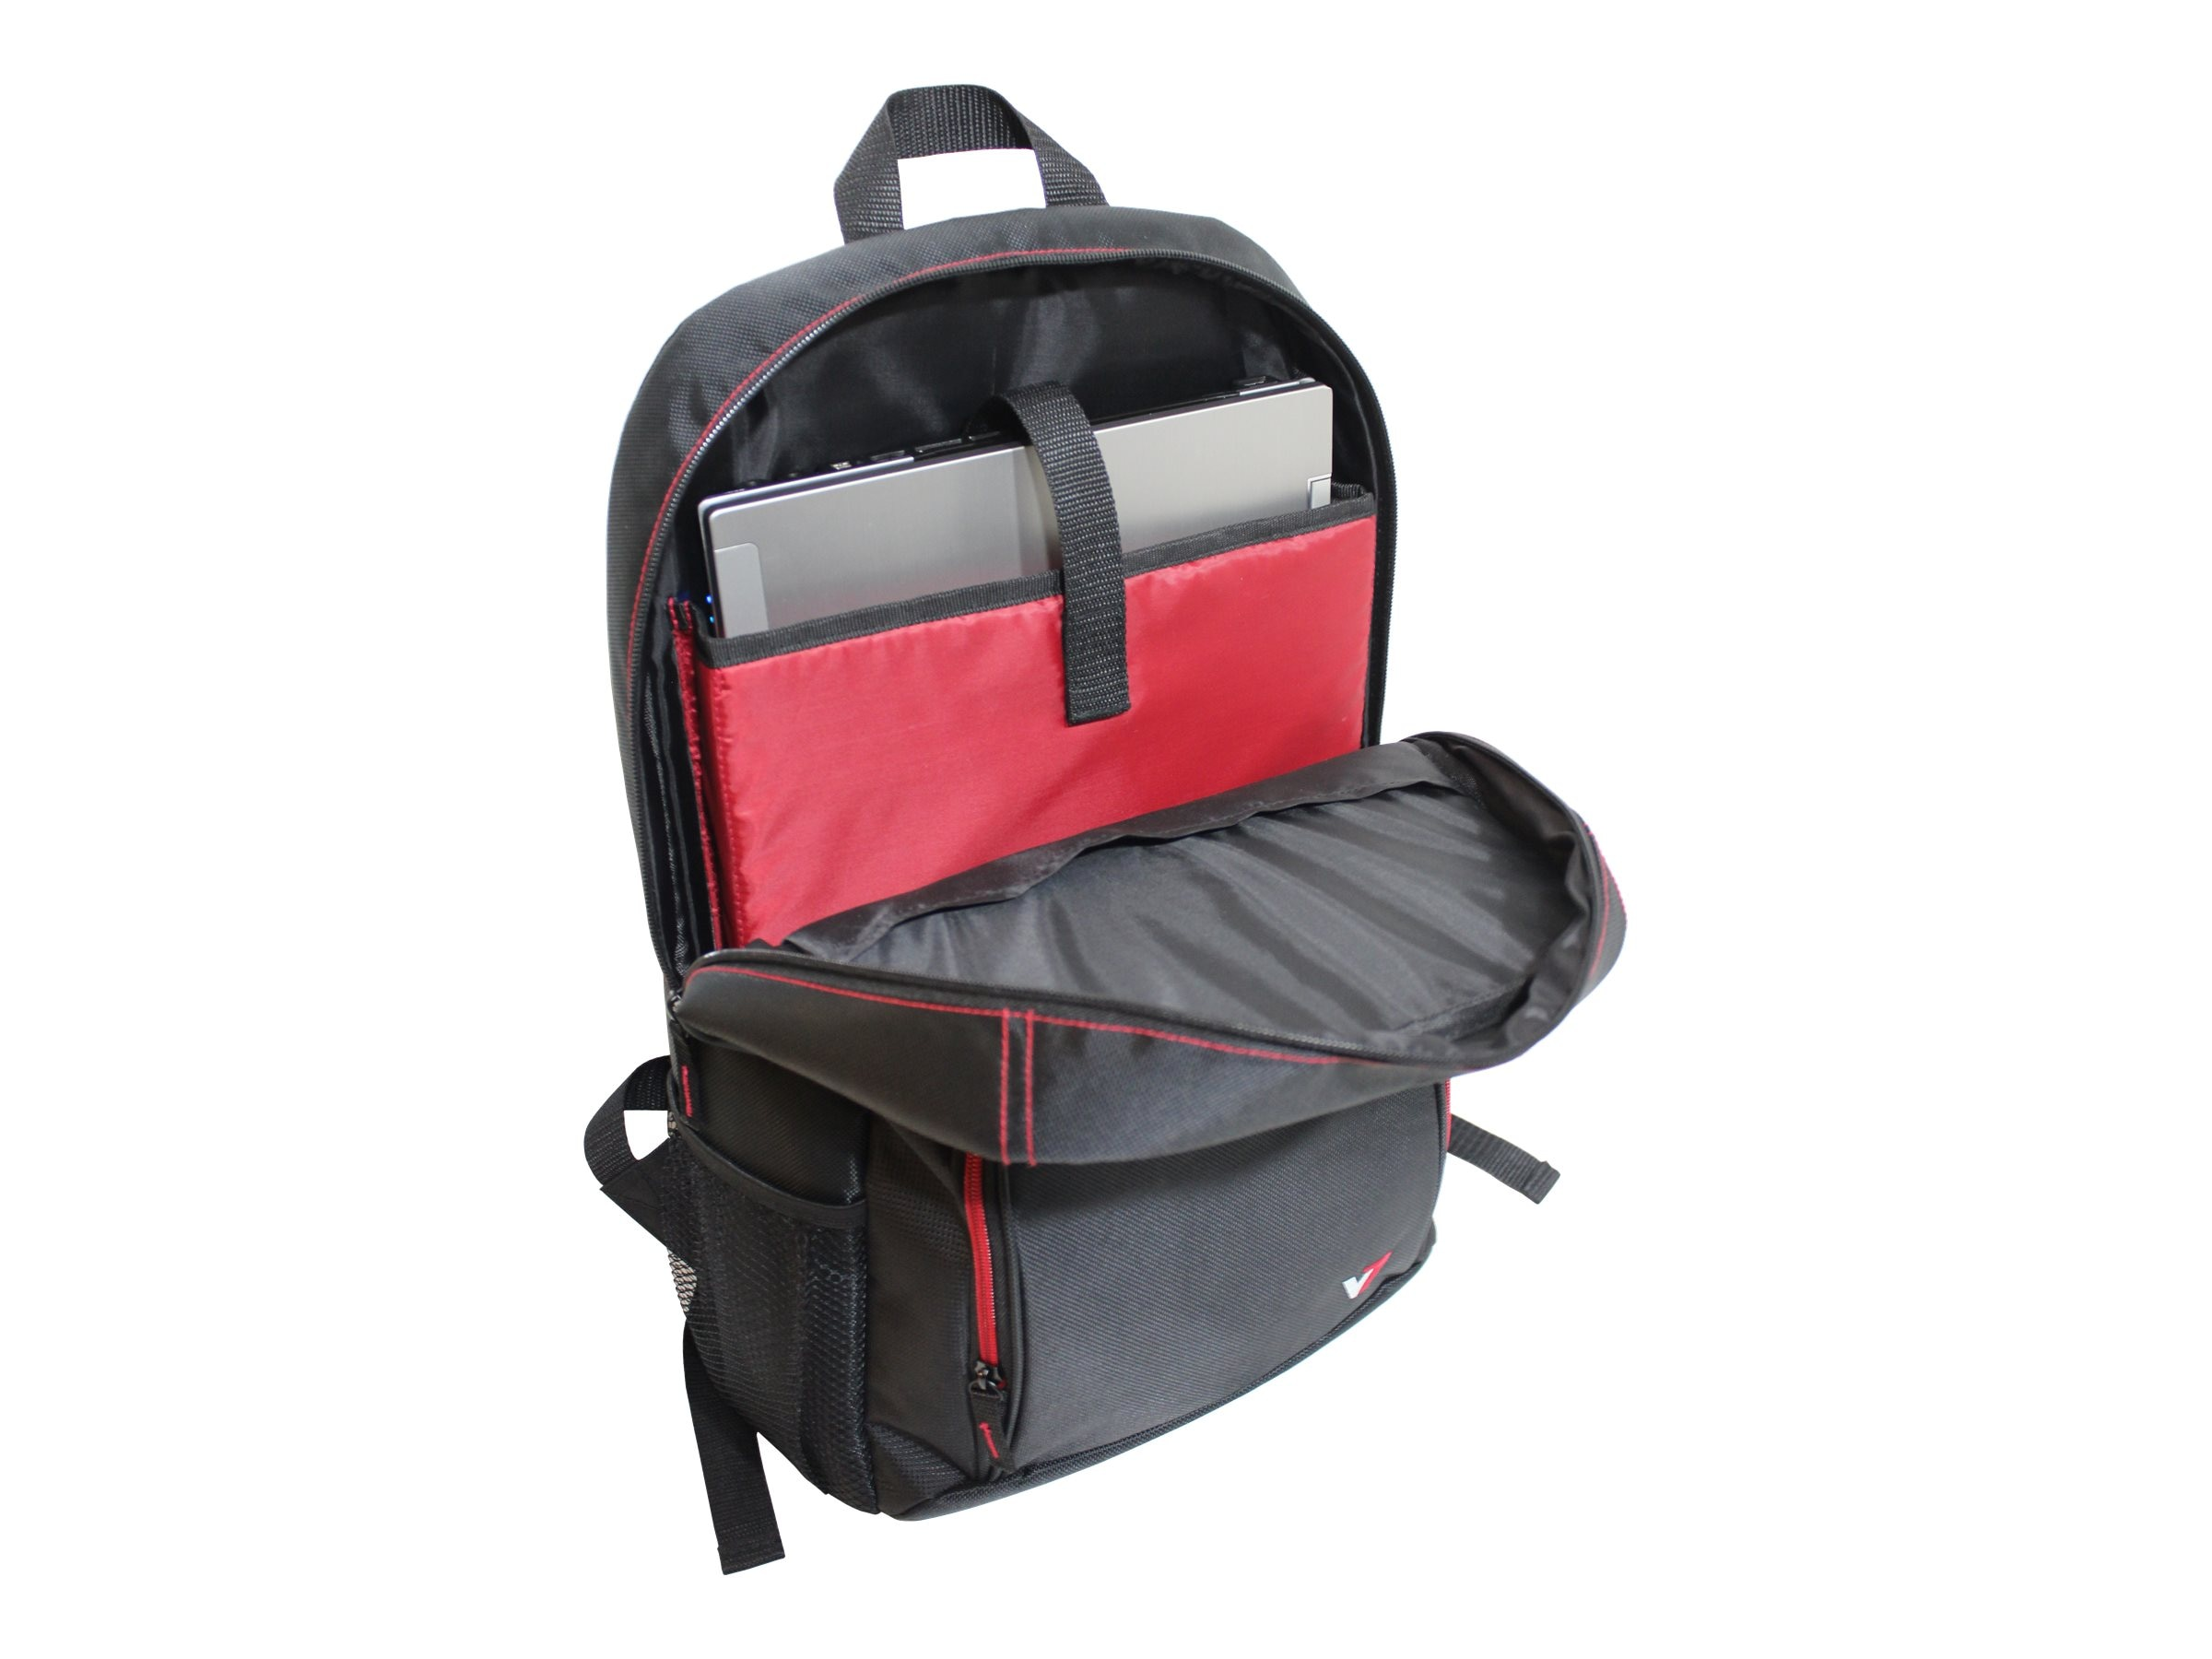 V7 Vantage 2 Backpack for 16.1 Laptop, Black w  Red Trim, CBV21RT-9N